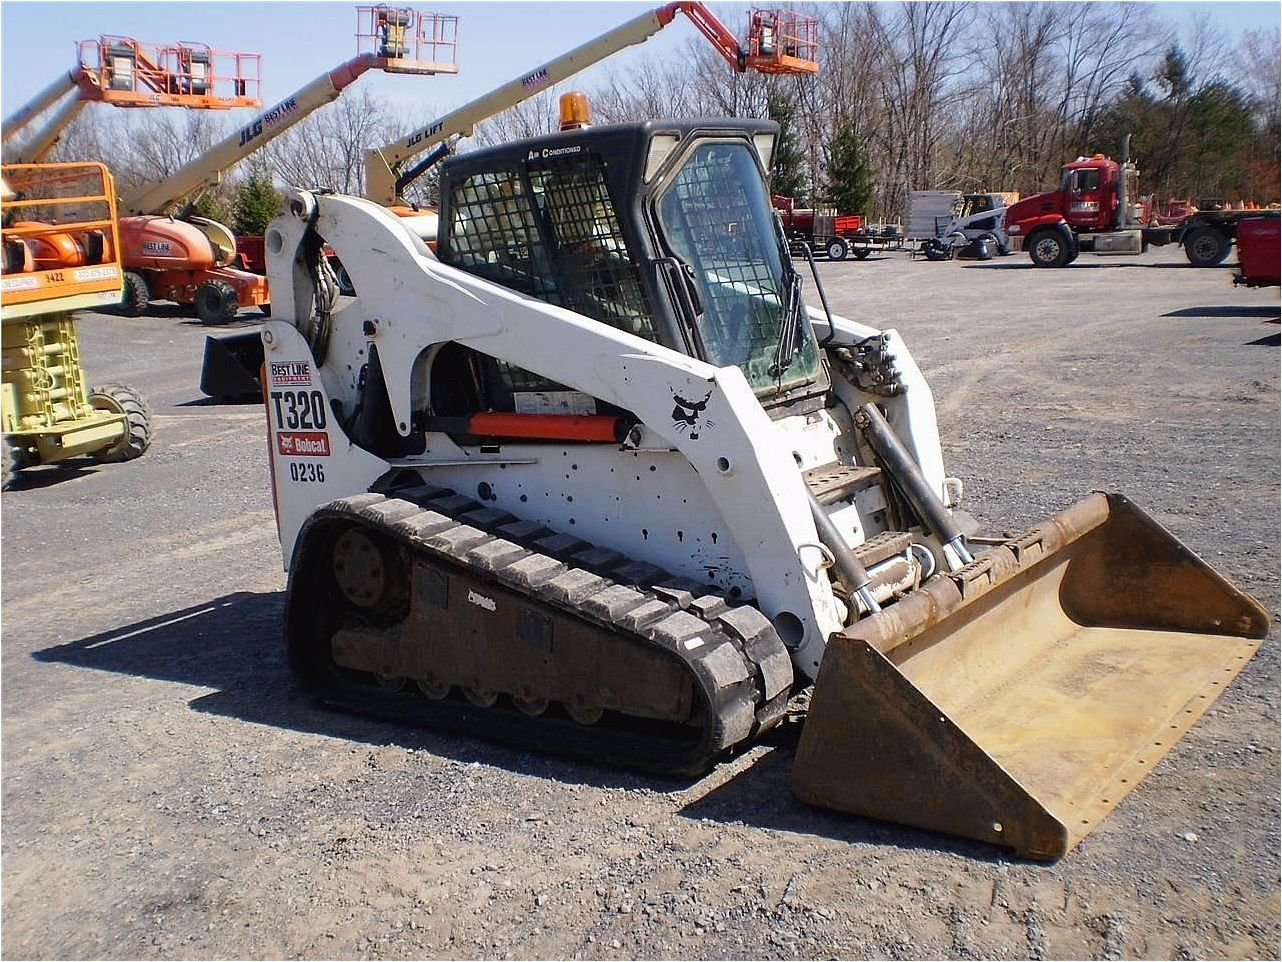 Pin by Rock & Dirt on Featured Equipment | Skid steer loader, Bobcat